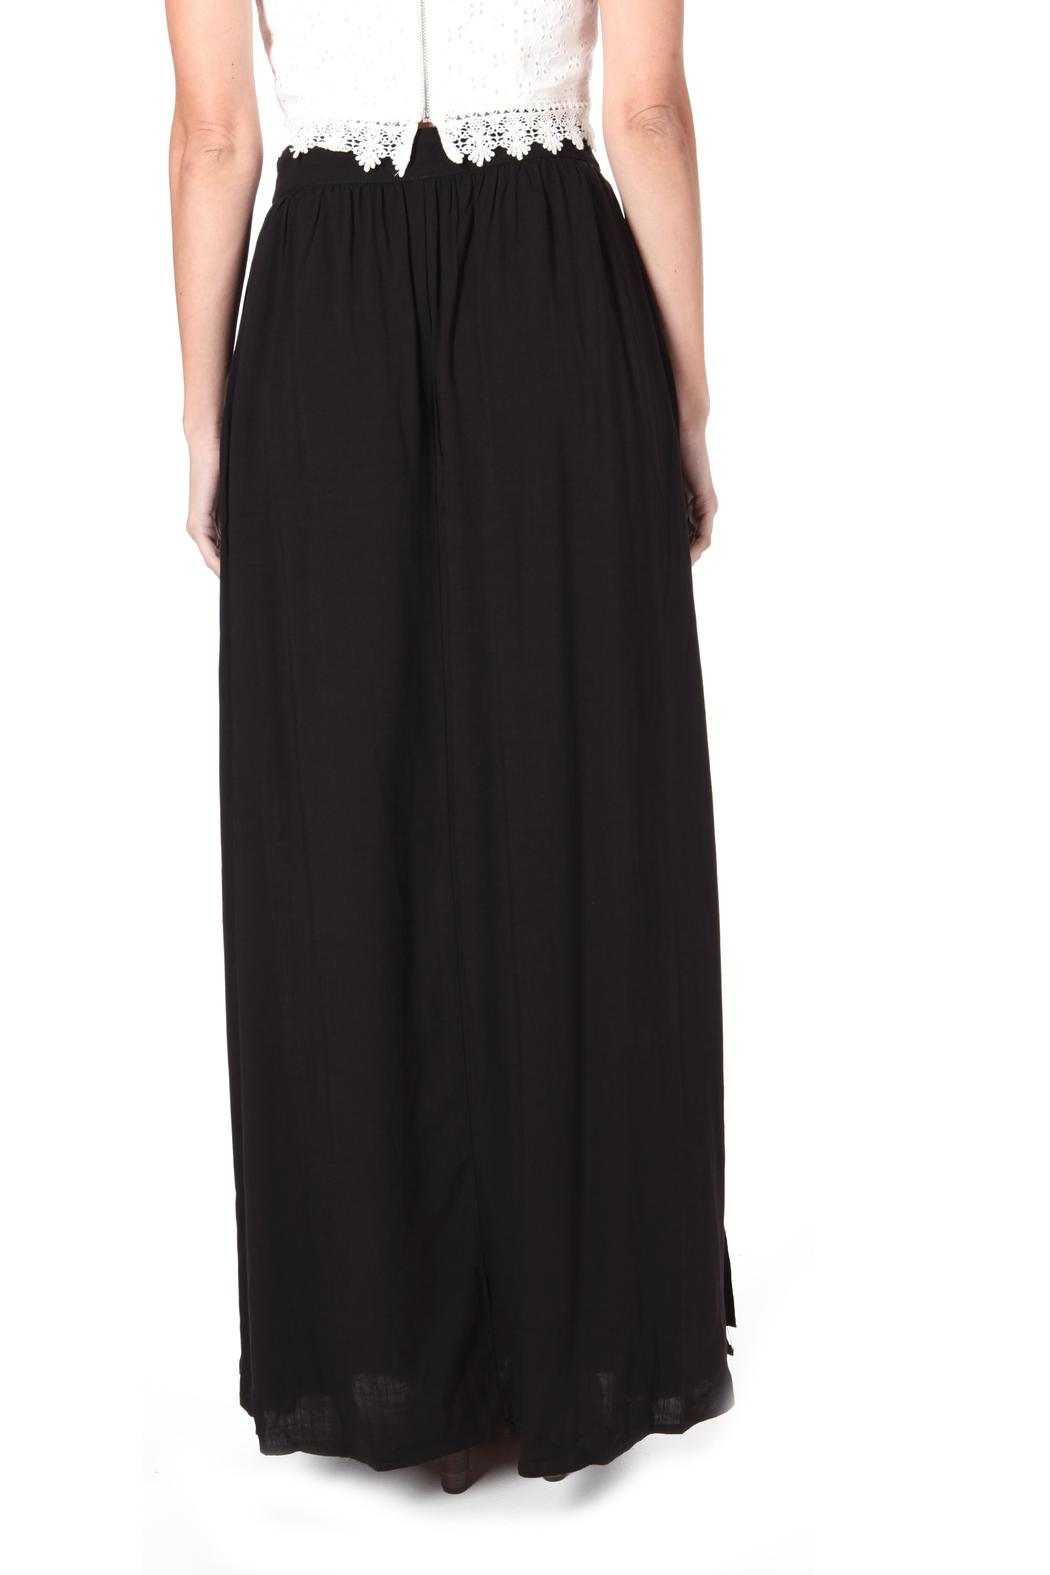 76bd8d34674 ShopGoldies Button Maxi-Skirt Black from Los Angeles by Goldie s ...